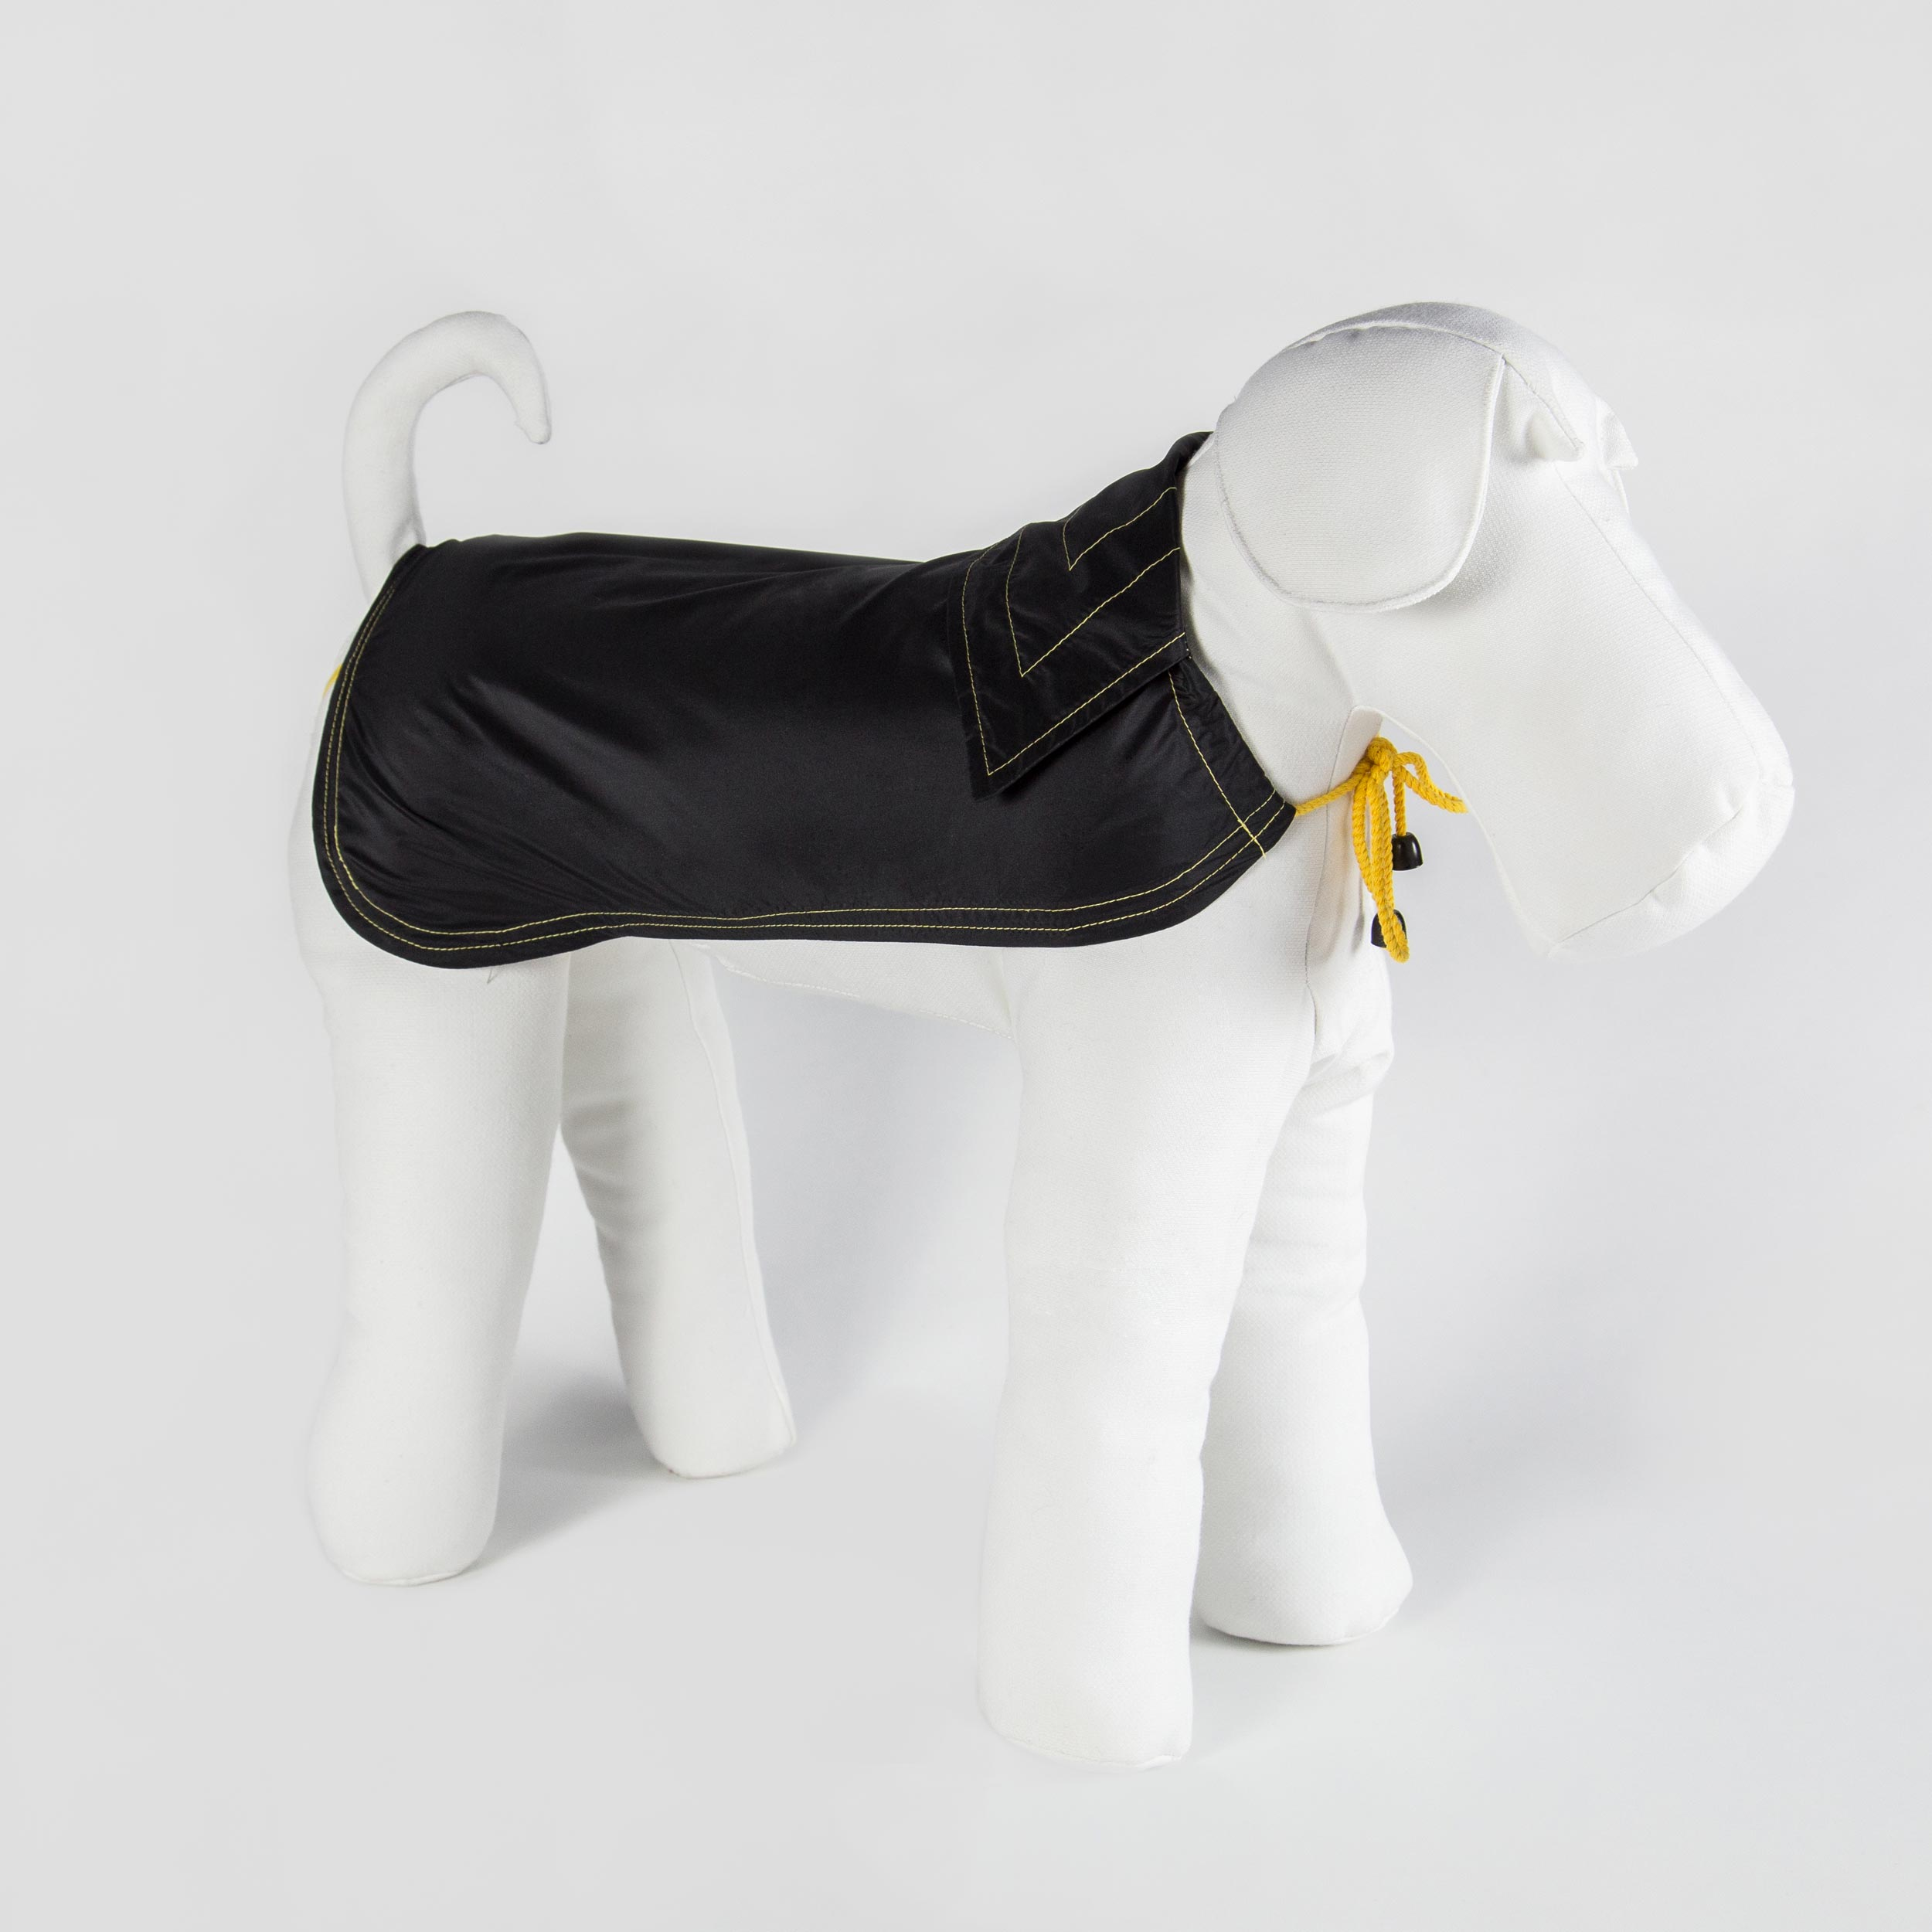 bespoke raincoat  for dogs in black fabric and yellow details